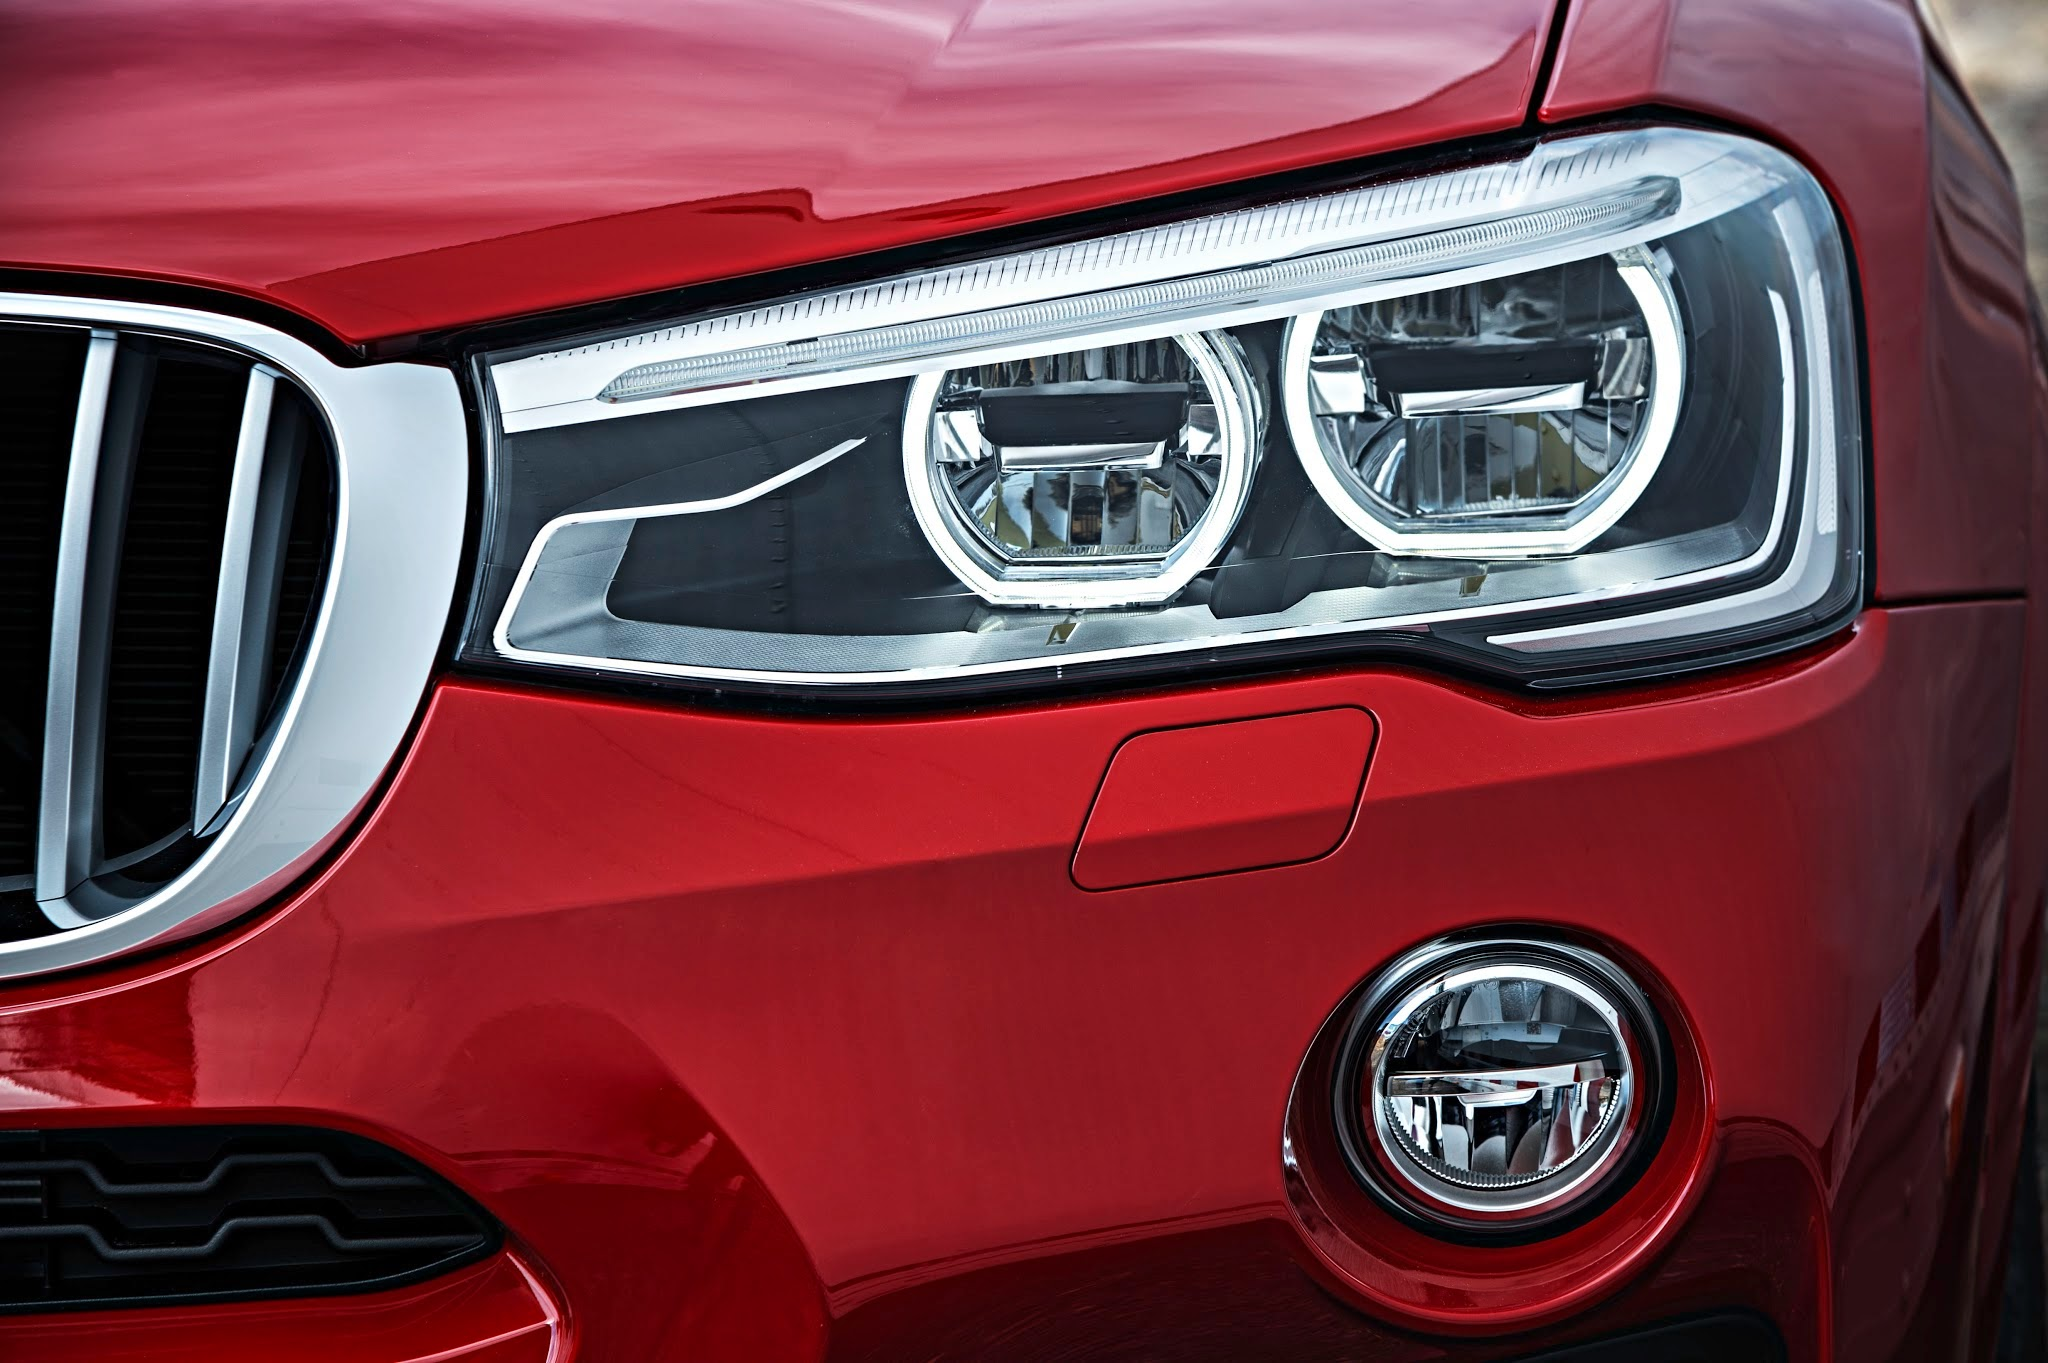 The New BMW X4